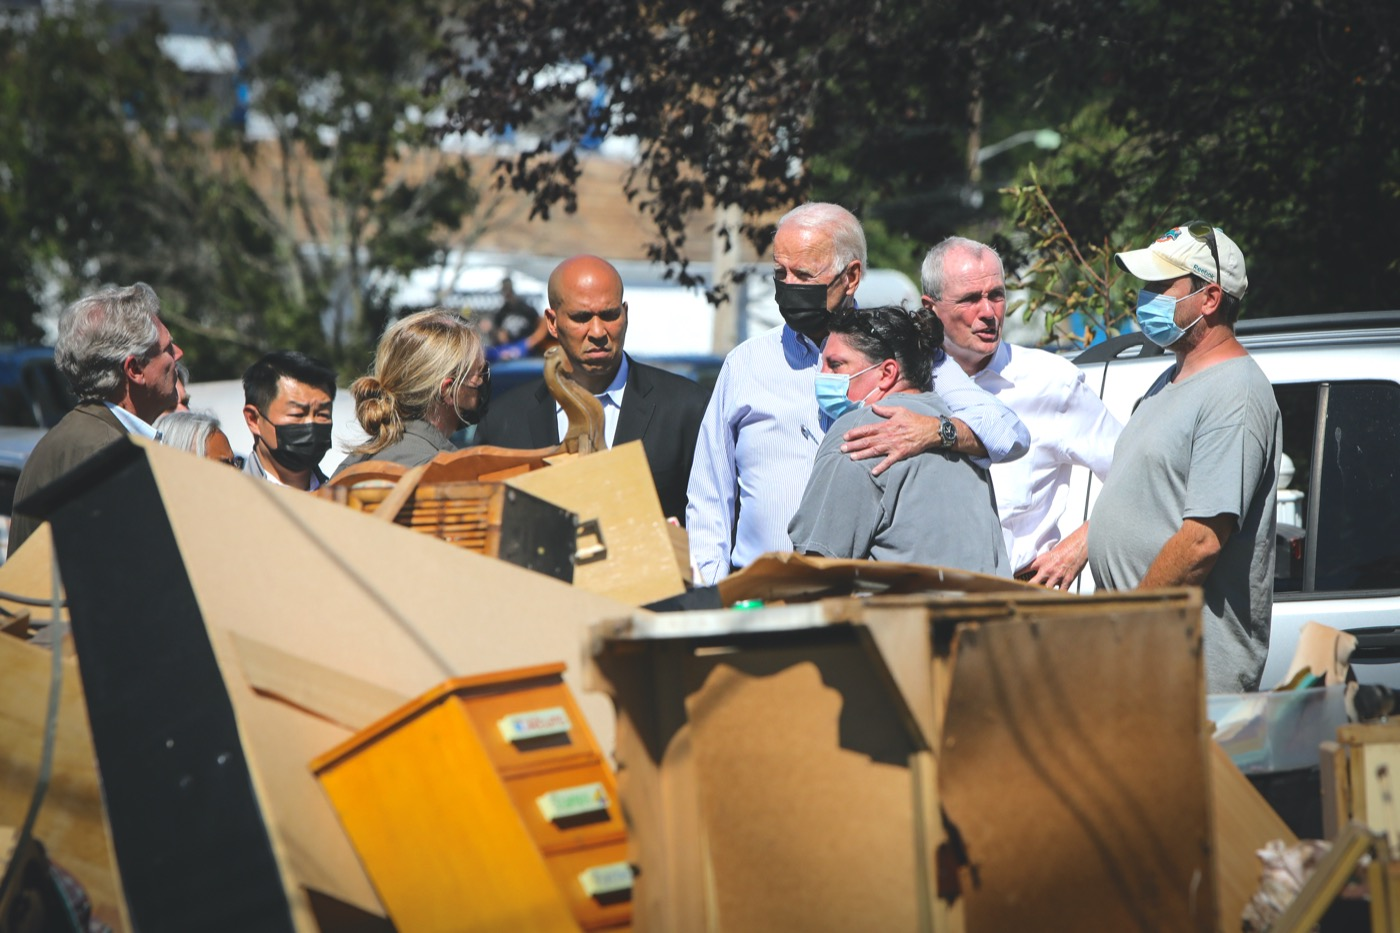 president biden comforts a white woman as they look on to wreckage and debris from hurrican ida. both of them are wearing masks a small group of people stand behind them